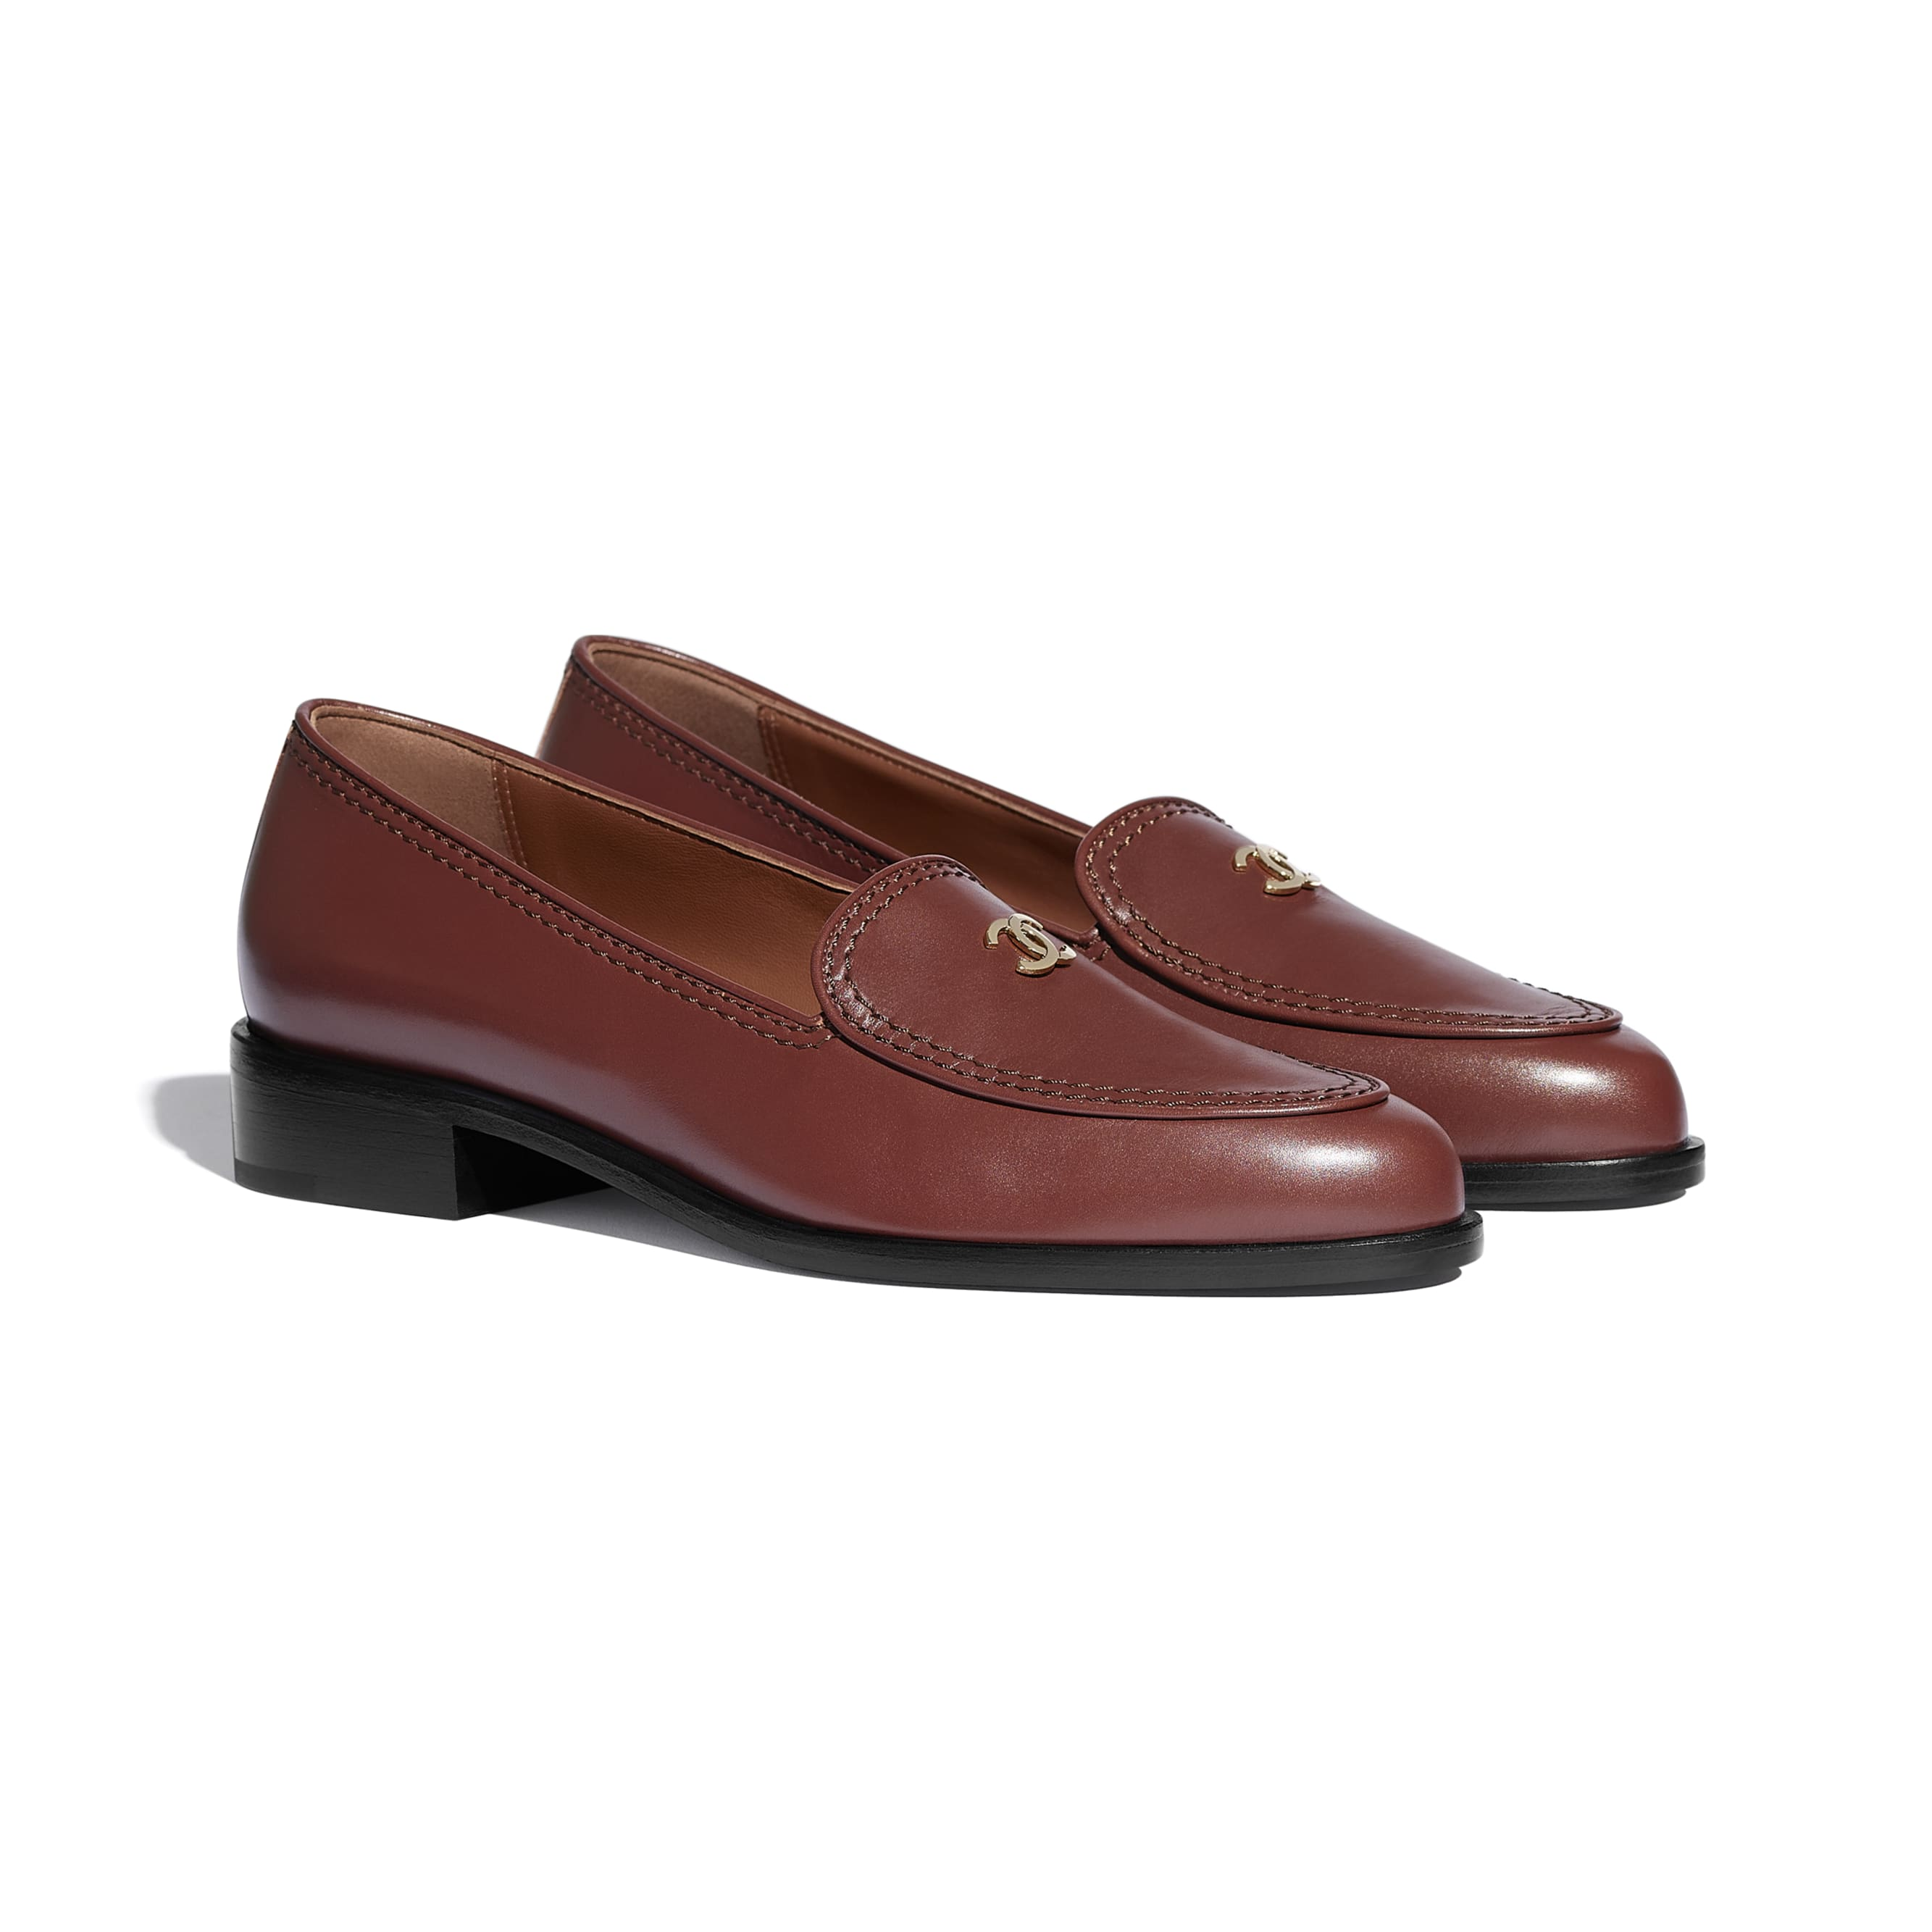 Loafers - Brown - Calfskin - CHANEL - Alternative view - see standard sized version